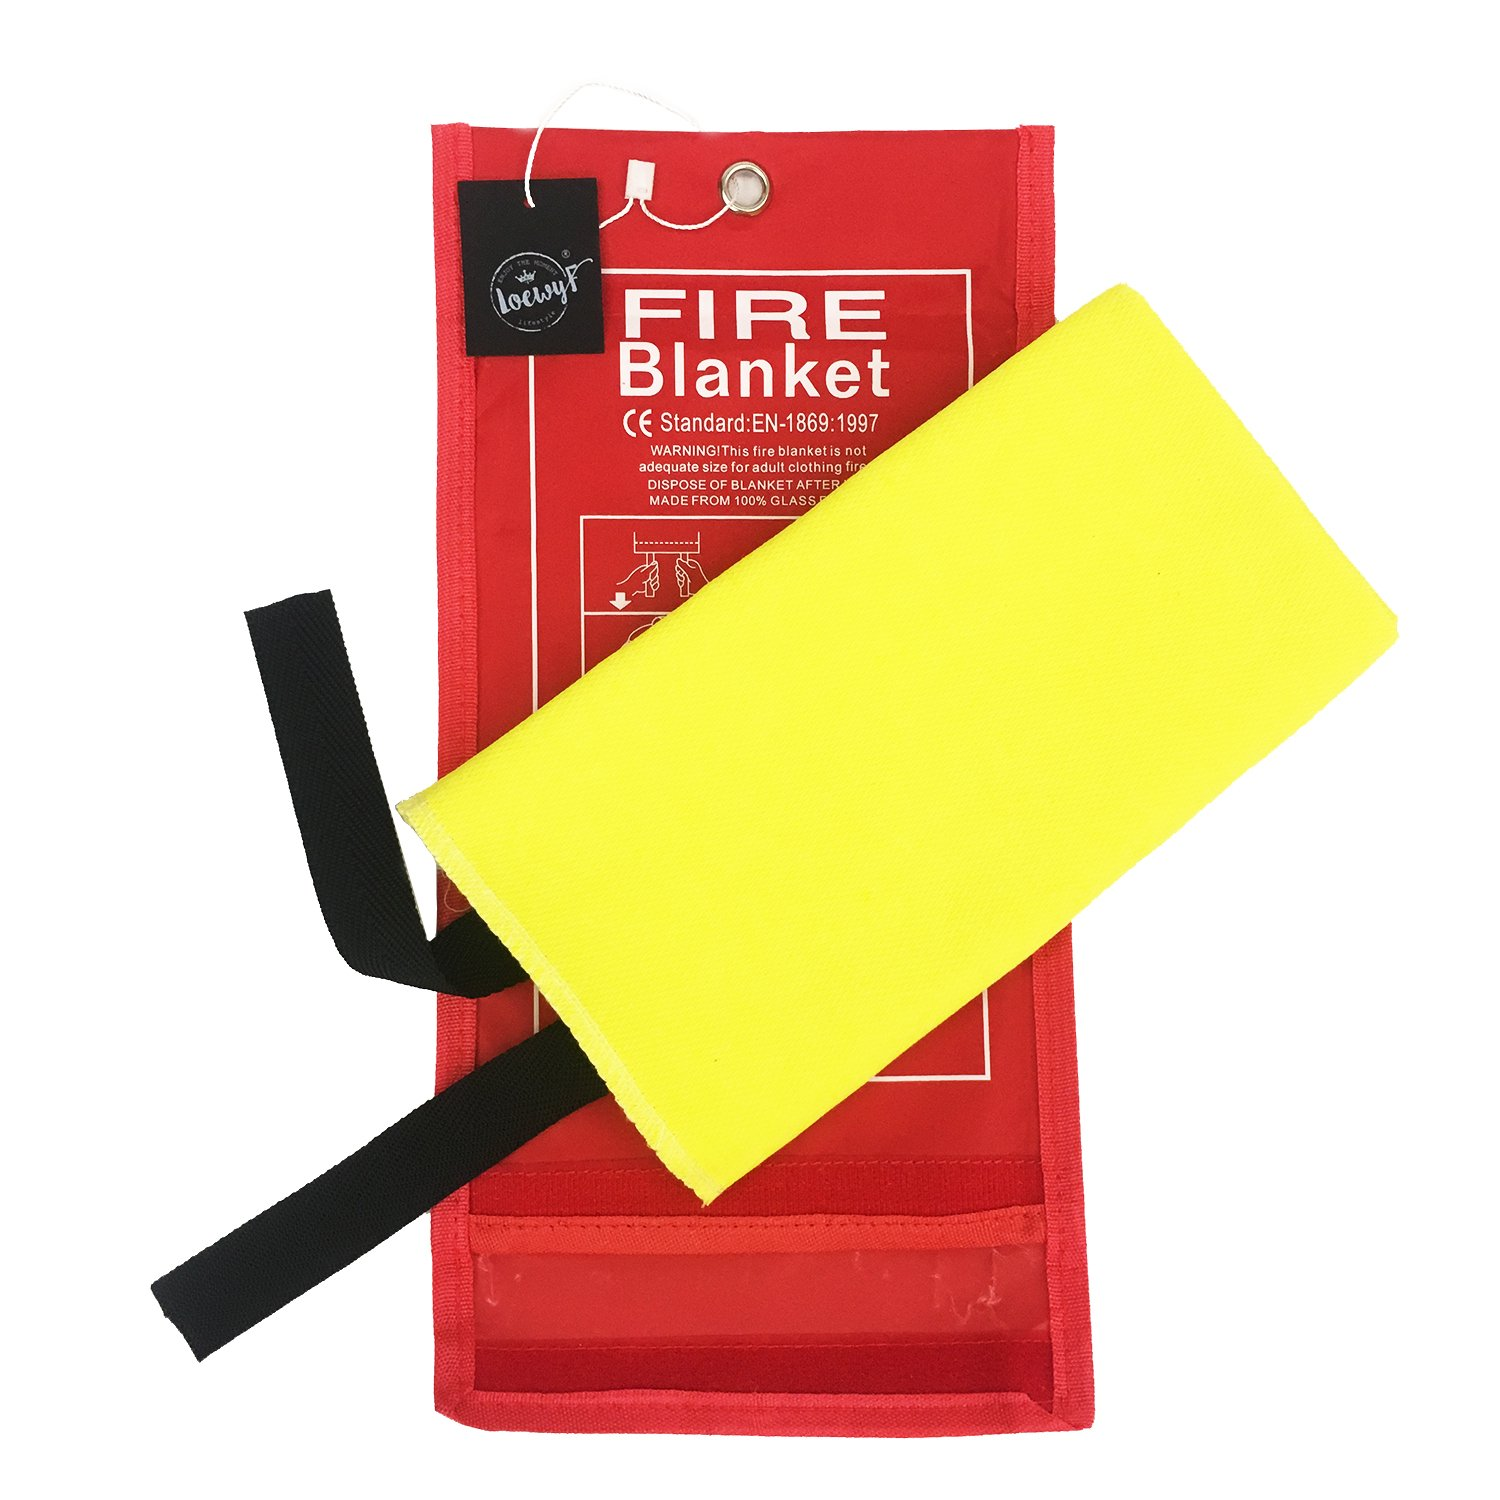 LOEWYF Glassfiber Base Fabric with Yellow Silica Coating Emergency Survival Fire Blanket